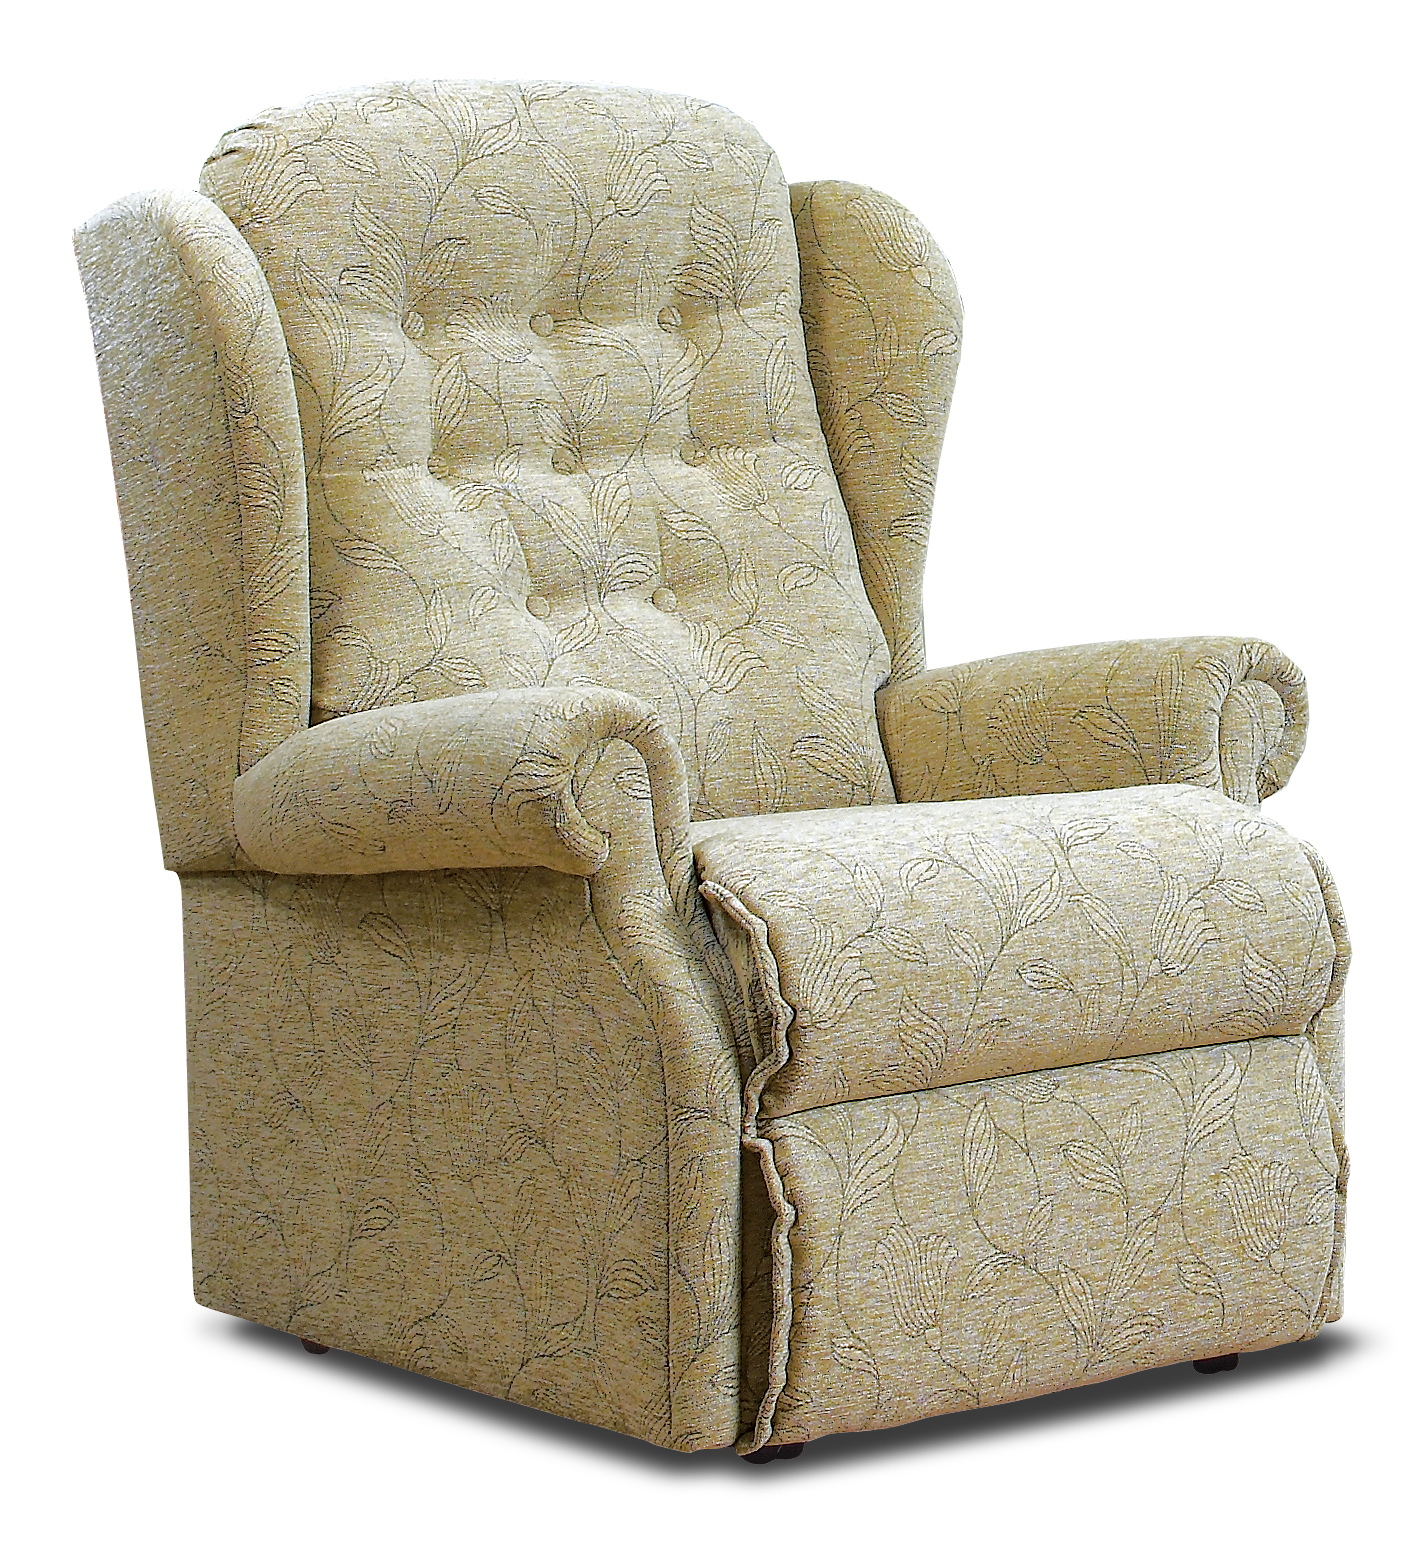 Sherborne Lynton Fixed Chair Mr Chairman Riser